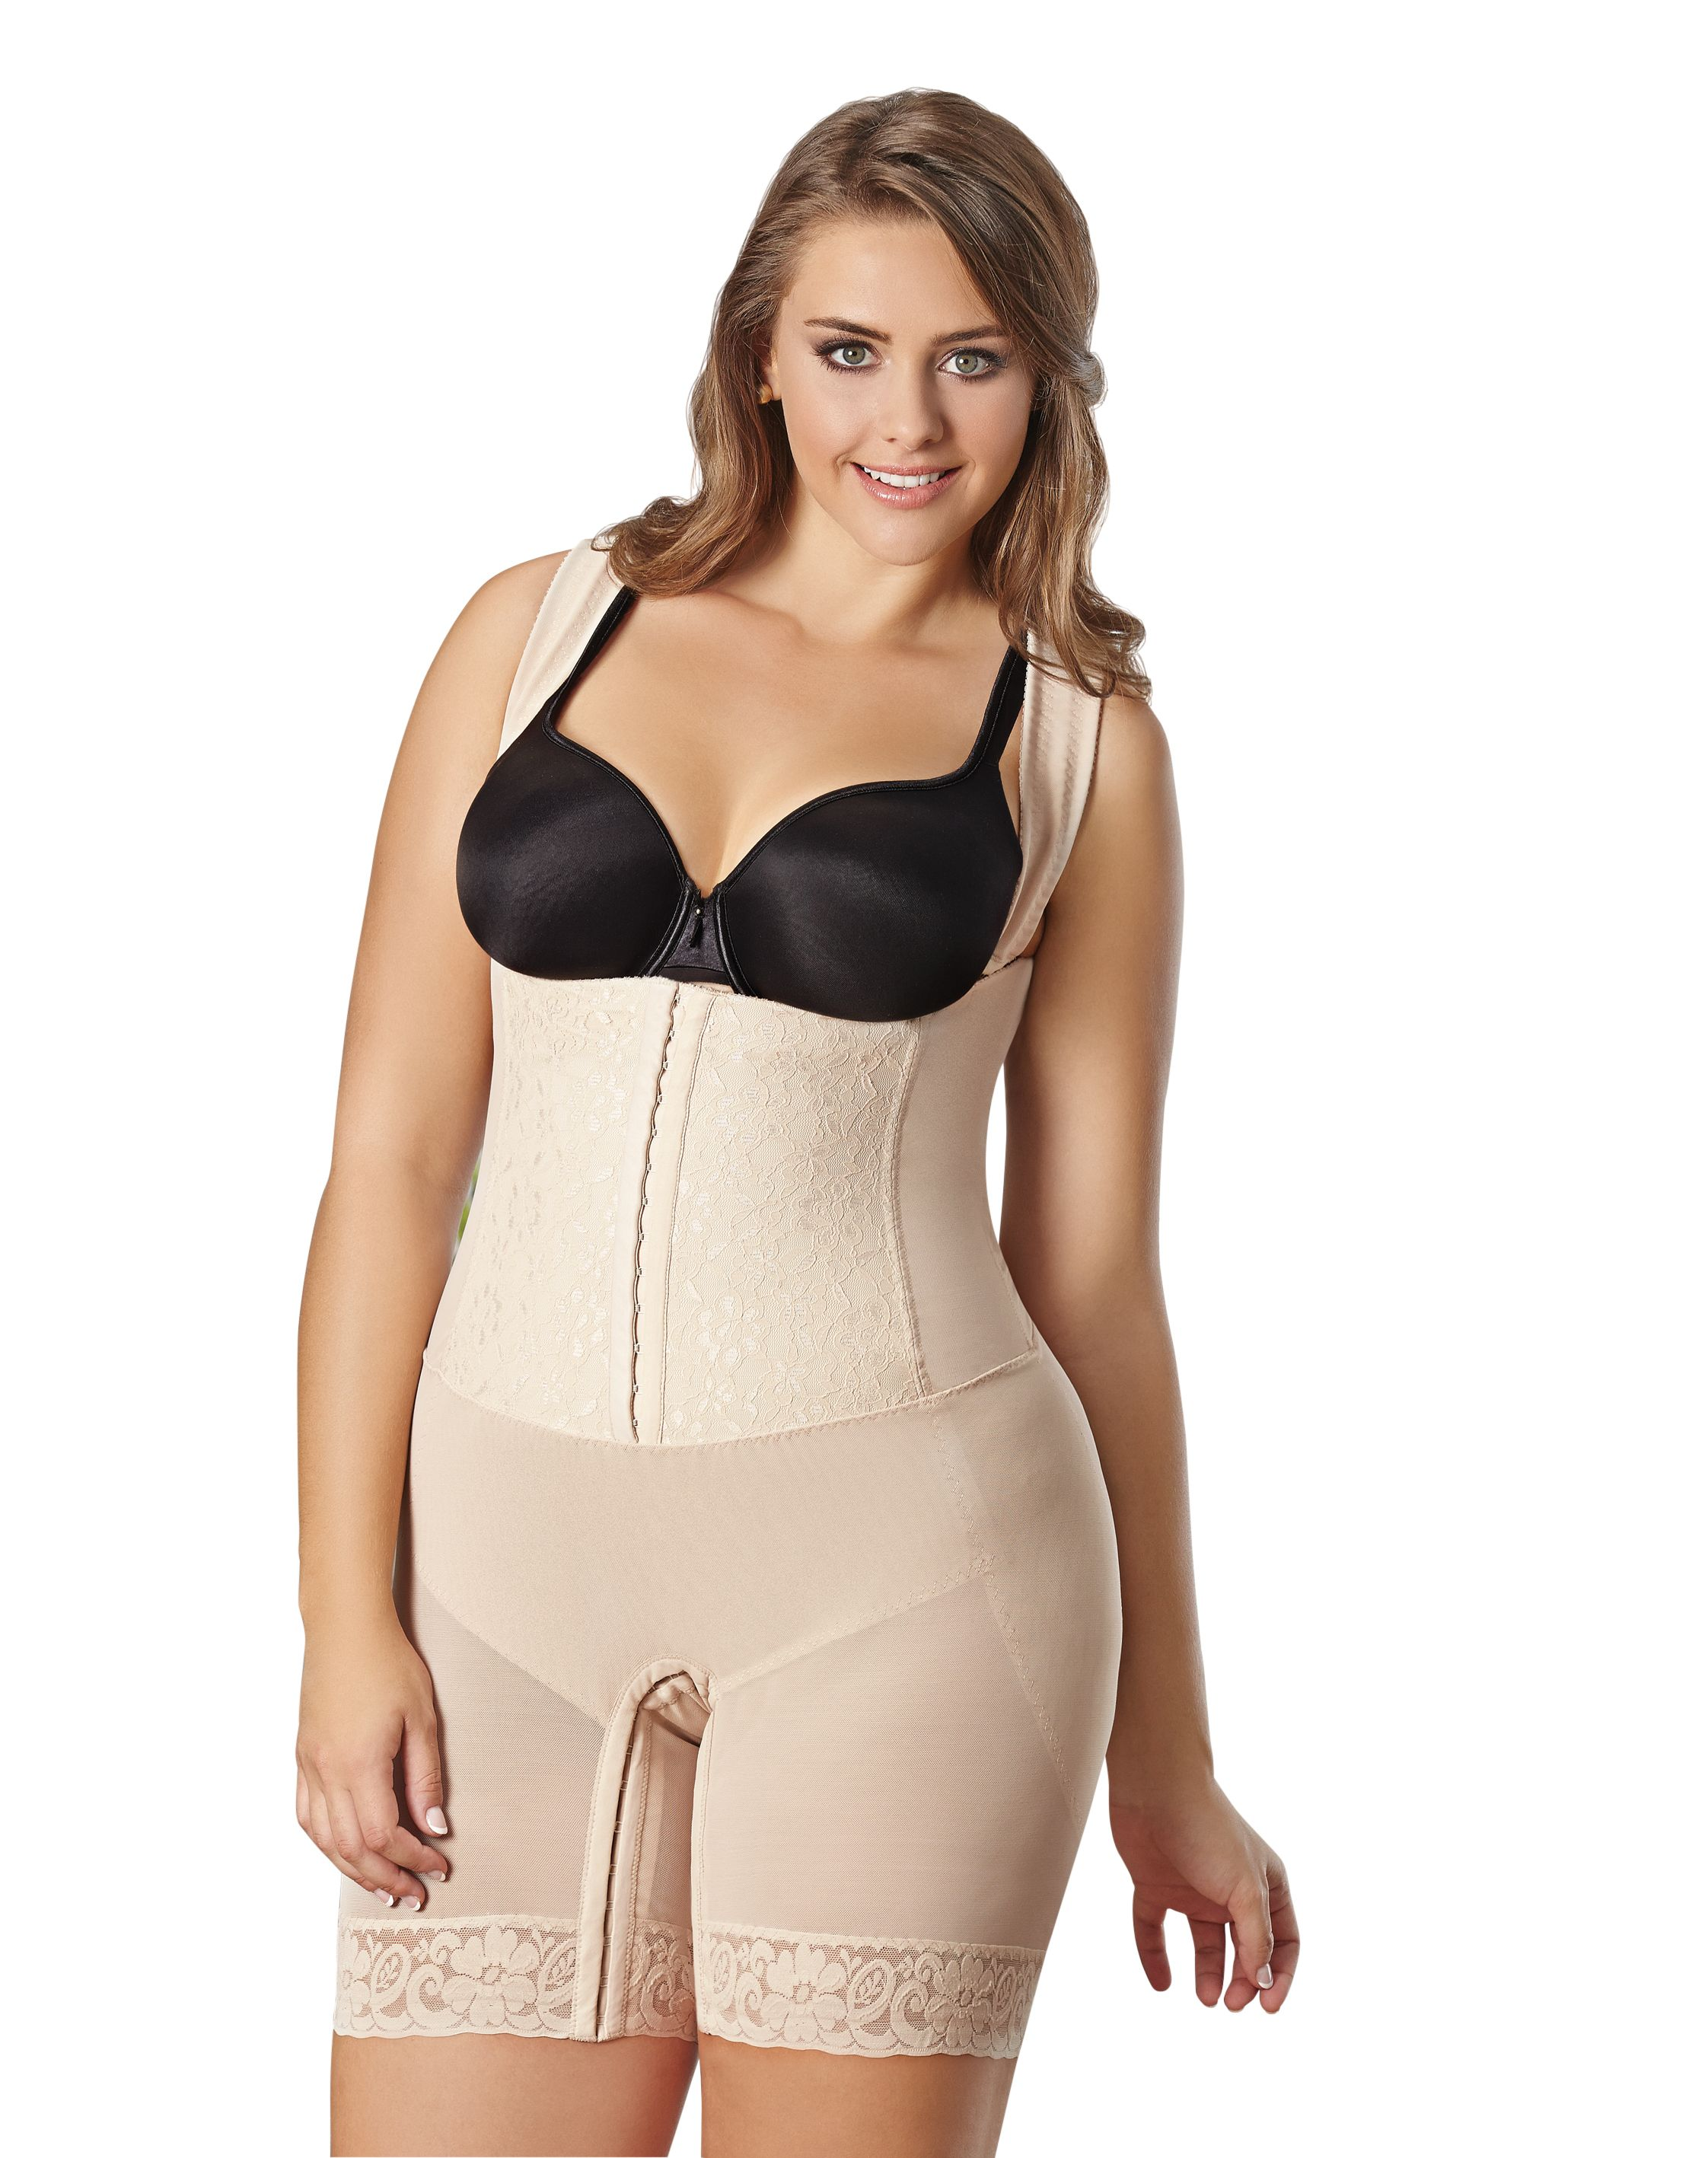 399a1da708969 Plus Size Shapewear Wholesale and Body Shapers